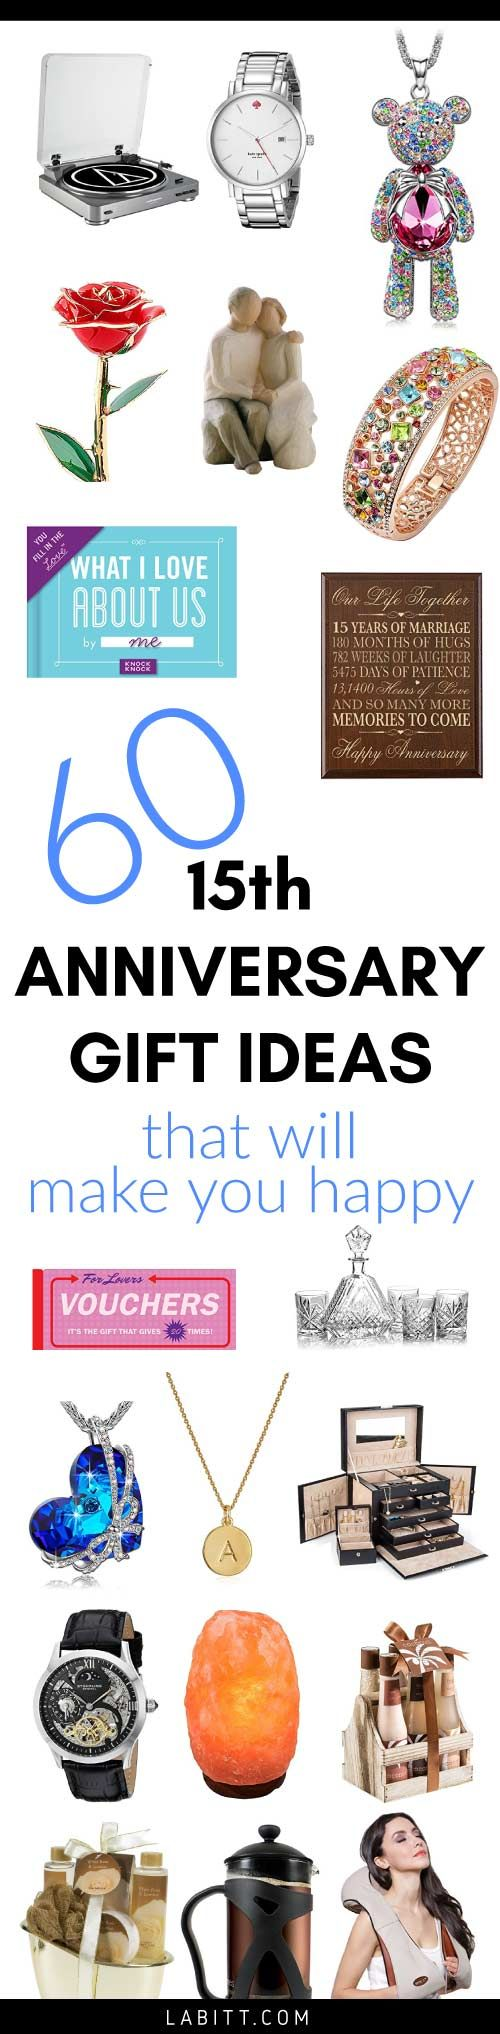 15th Wedding Anniversary Gift Ideas for Her Anniversary